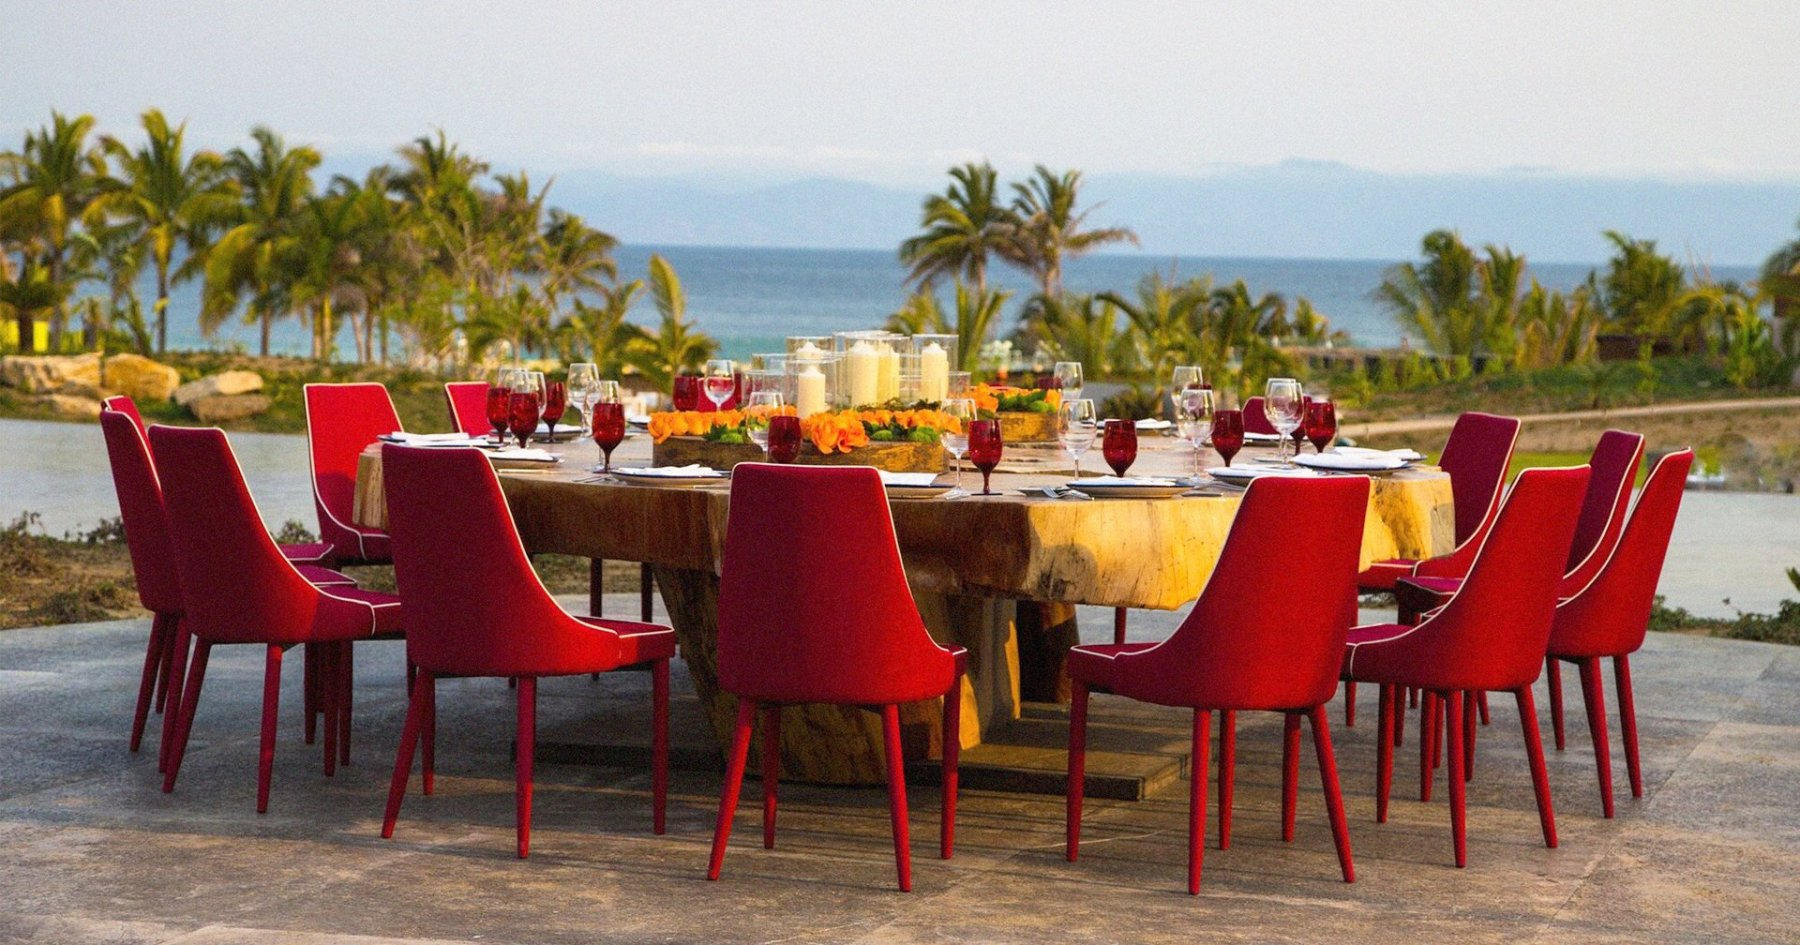 The World's Most Exclusive Restaurant Has One Table